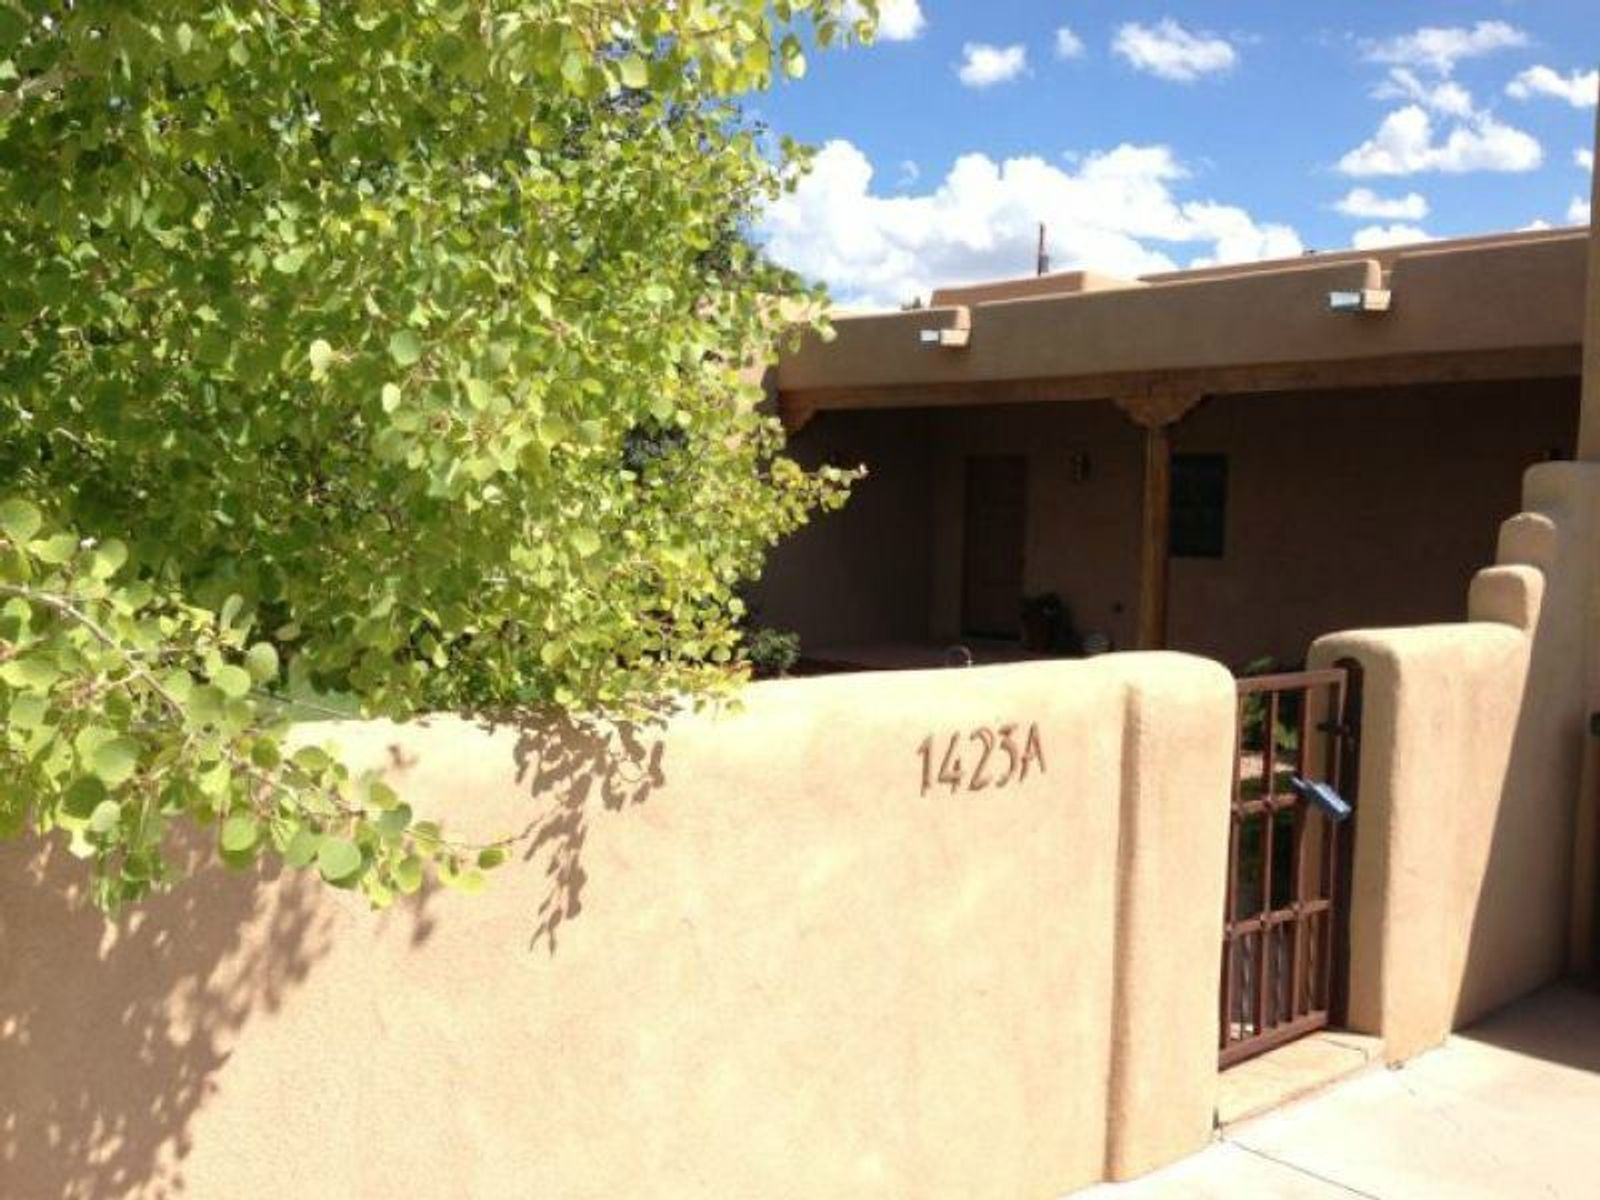 1423-A Galisteo Street, Santa Fe NM Single Family Home - Santa Fe Real Estate